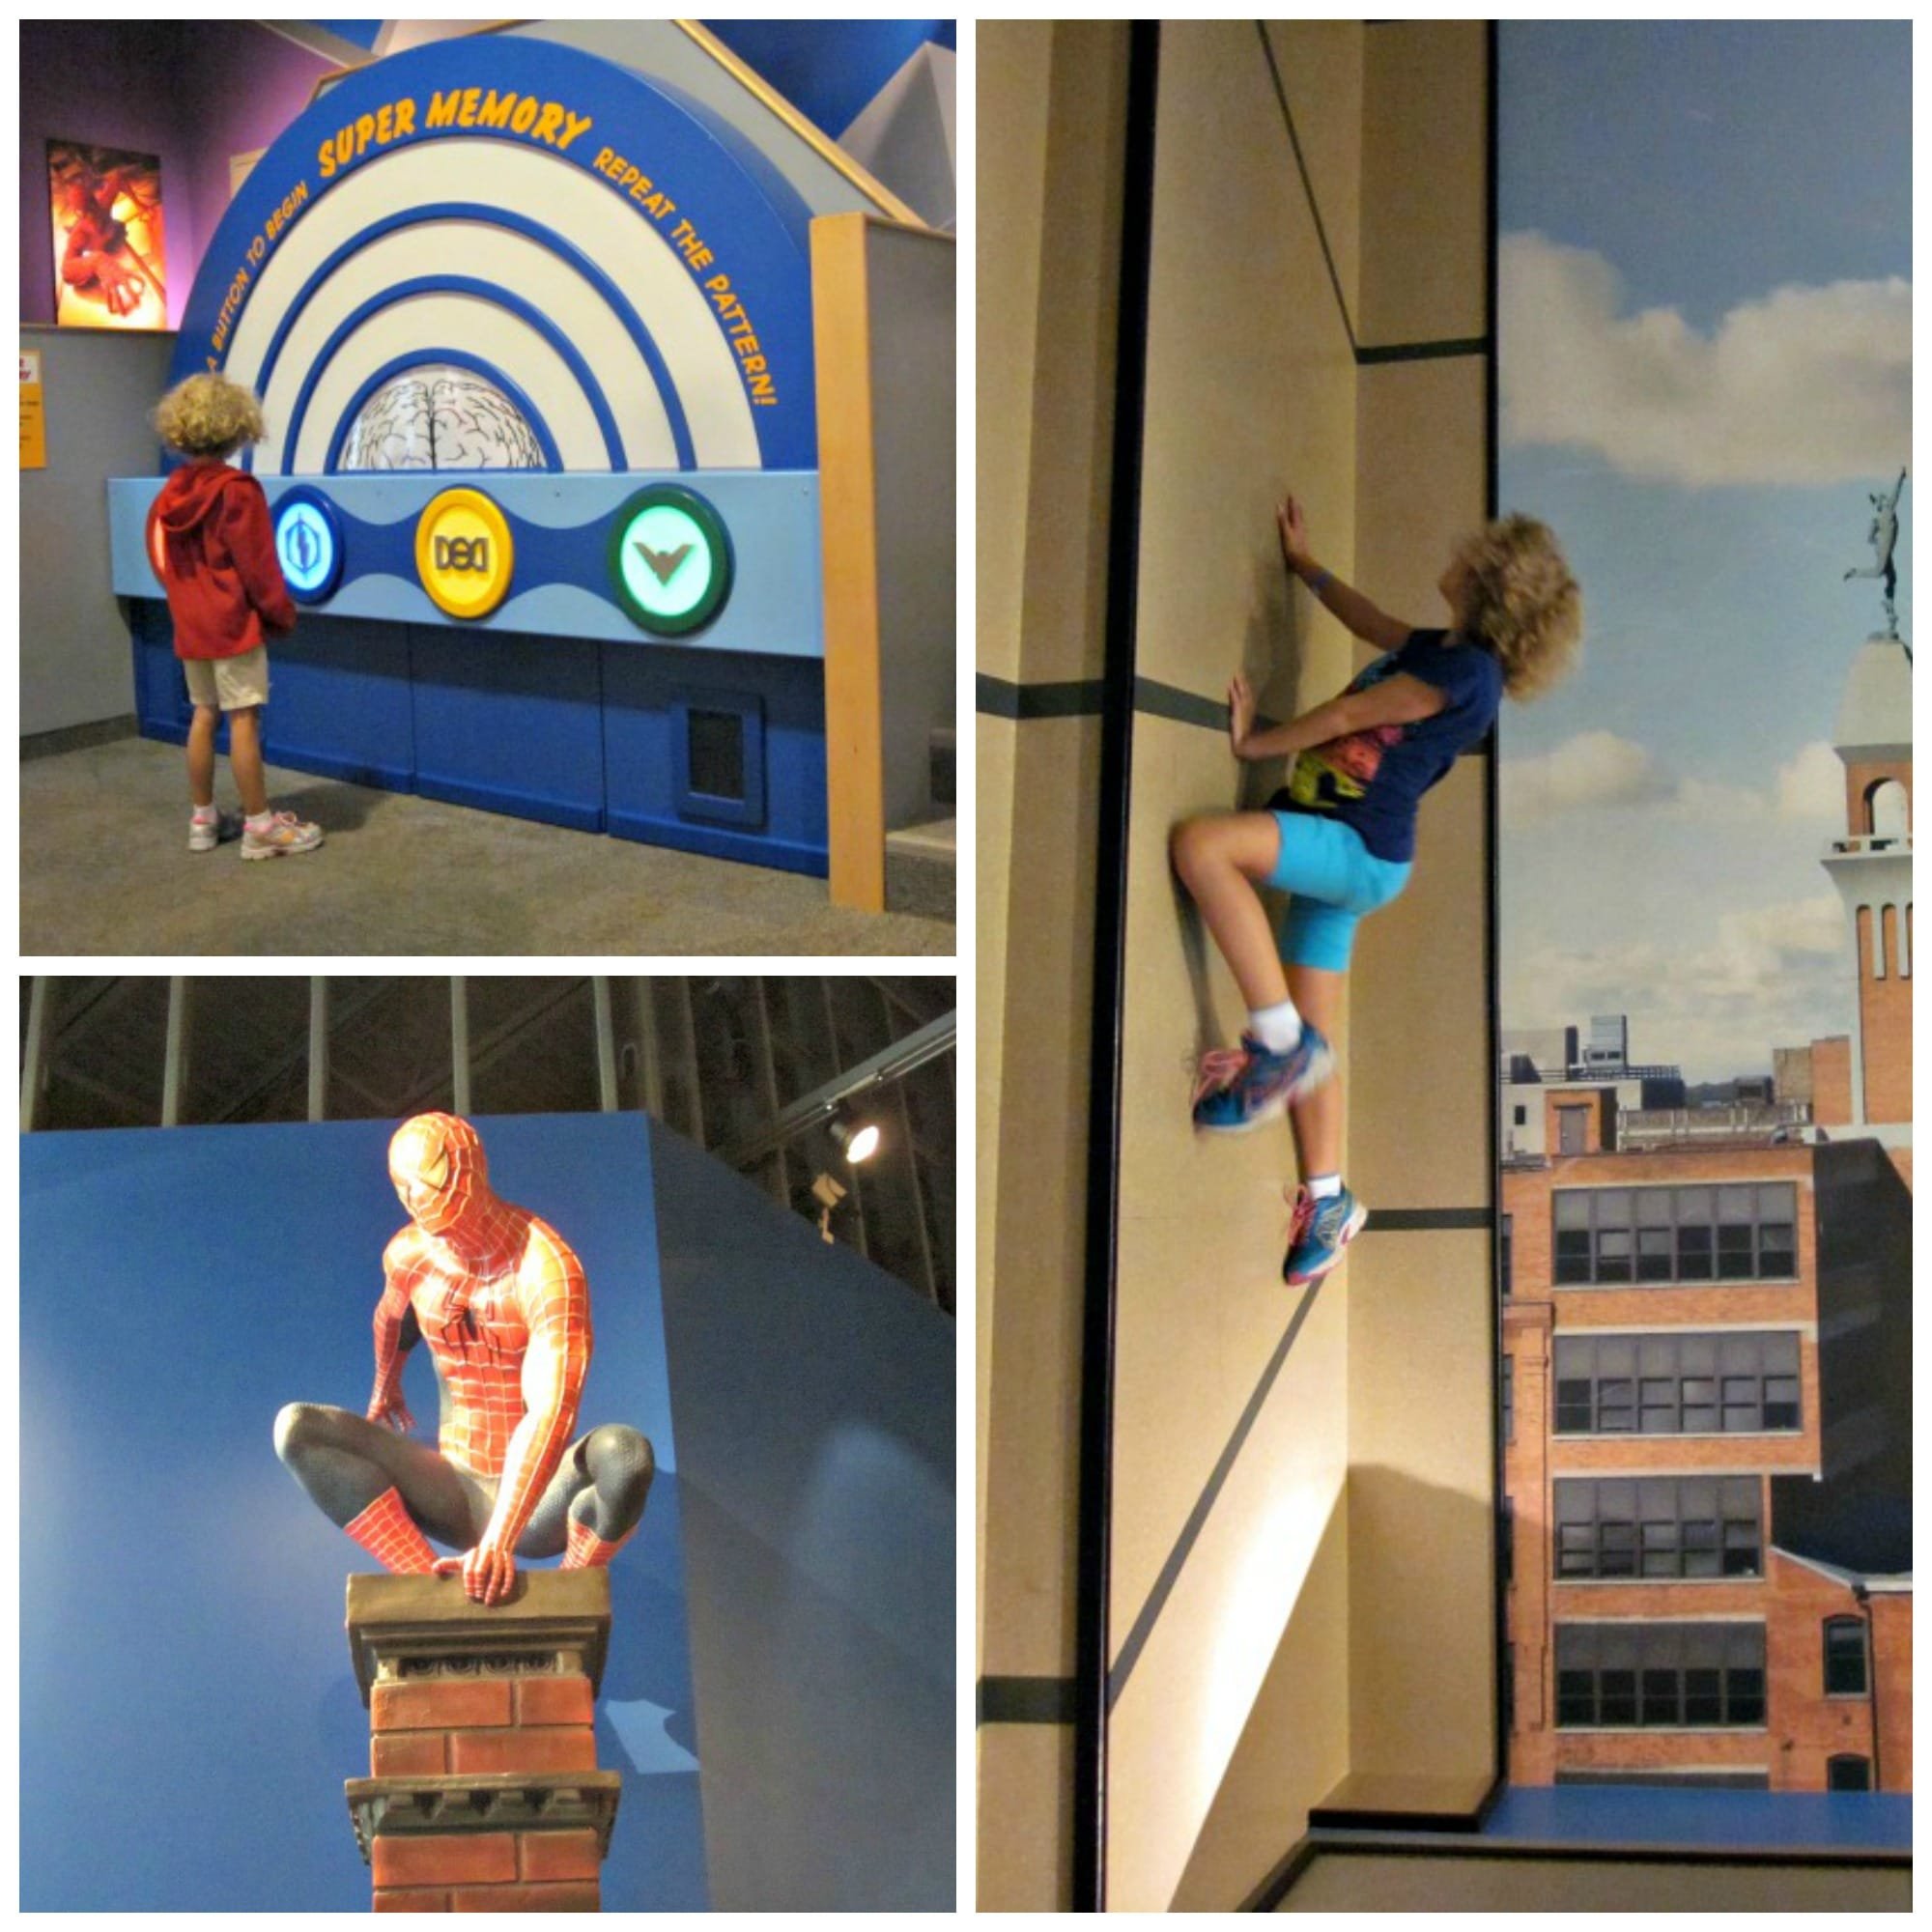 Strong National Museum of Play | American Comic Book Heroes #familytravel